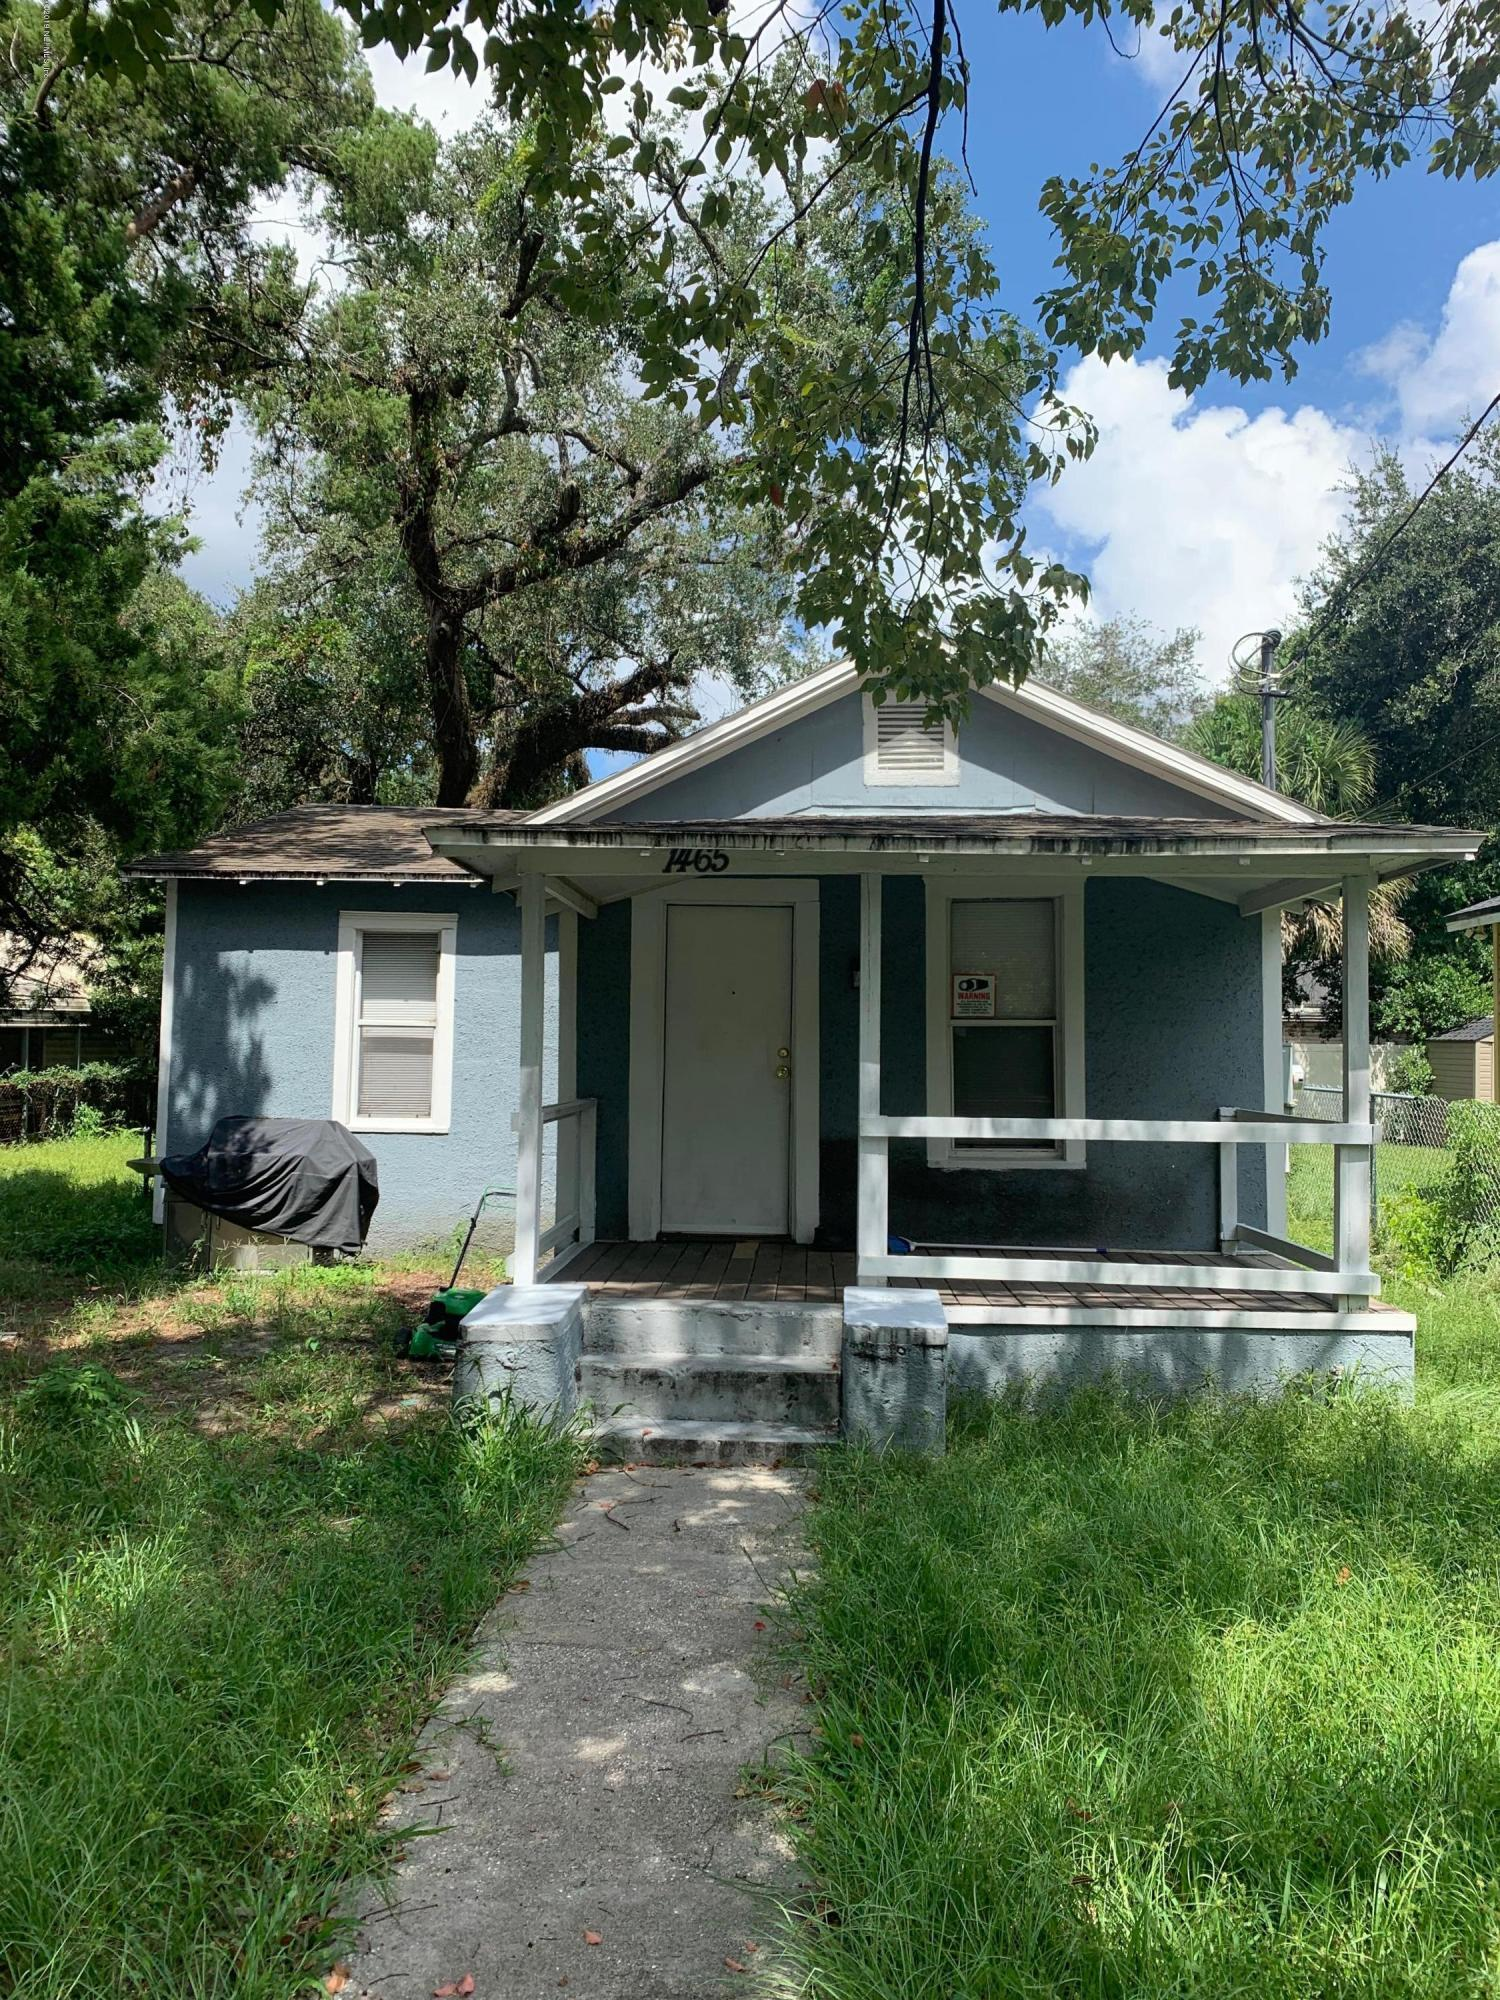 1465 15TH, JACKSONVILLE, FLORIDA 32206, 2 Bedrooms Bedrooms, ,1 BathroomBathrooms,Residential,For sale,15TH,1015140